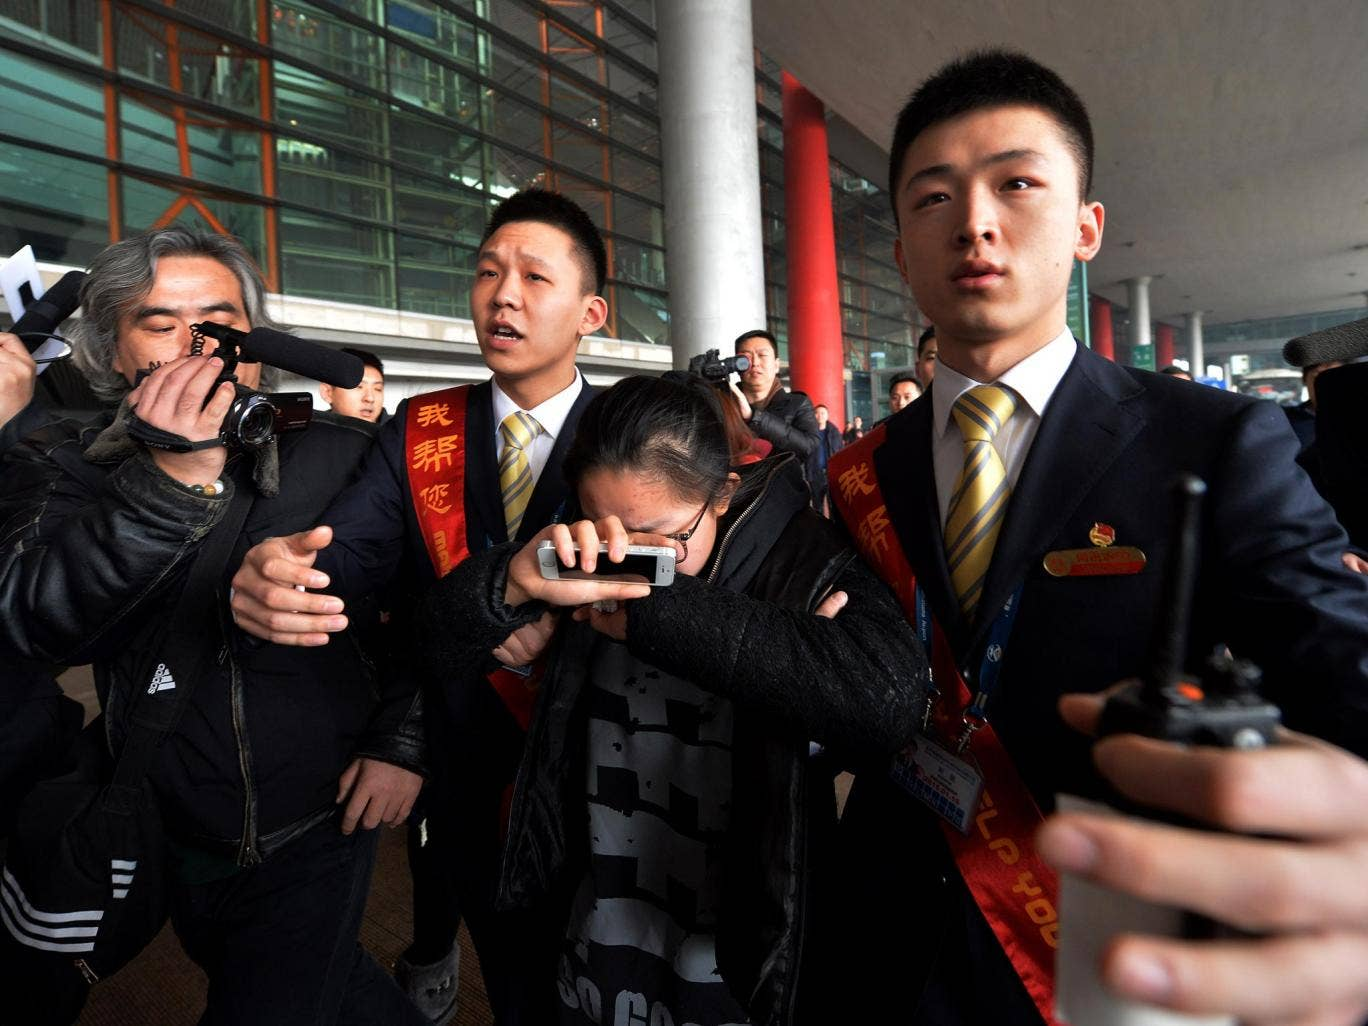 A crying woman is escorted to a bus for relatives at the Beijing Airport after news of the missing Malaysia Airlines Boeing 777-200 plane